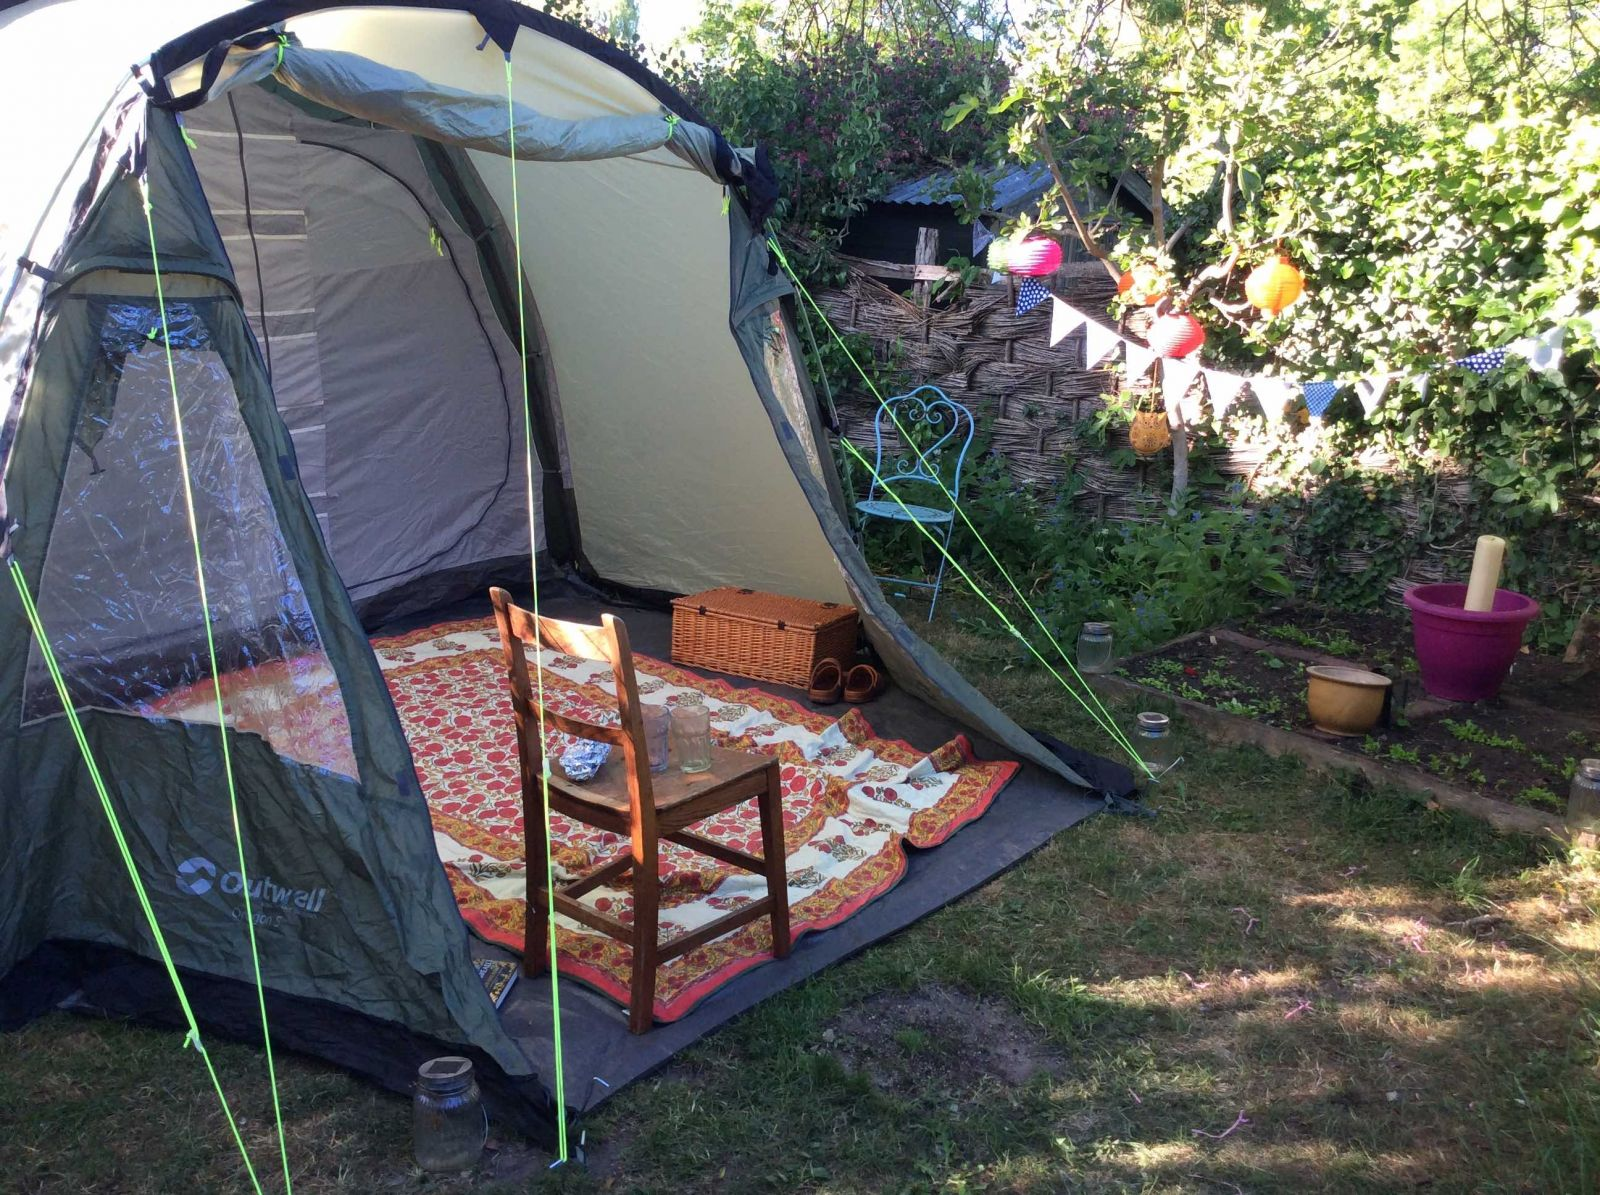 Home holiday - camping trip in the garden